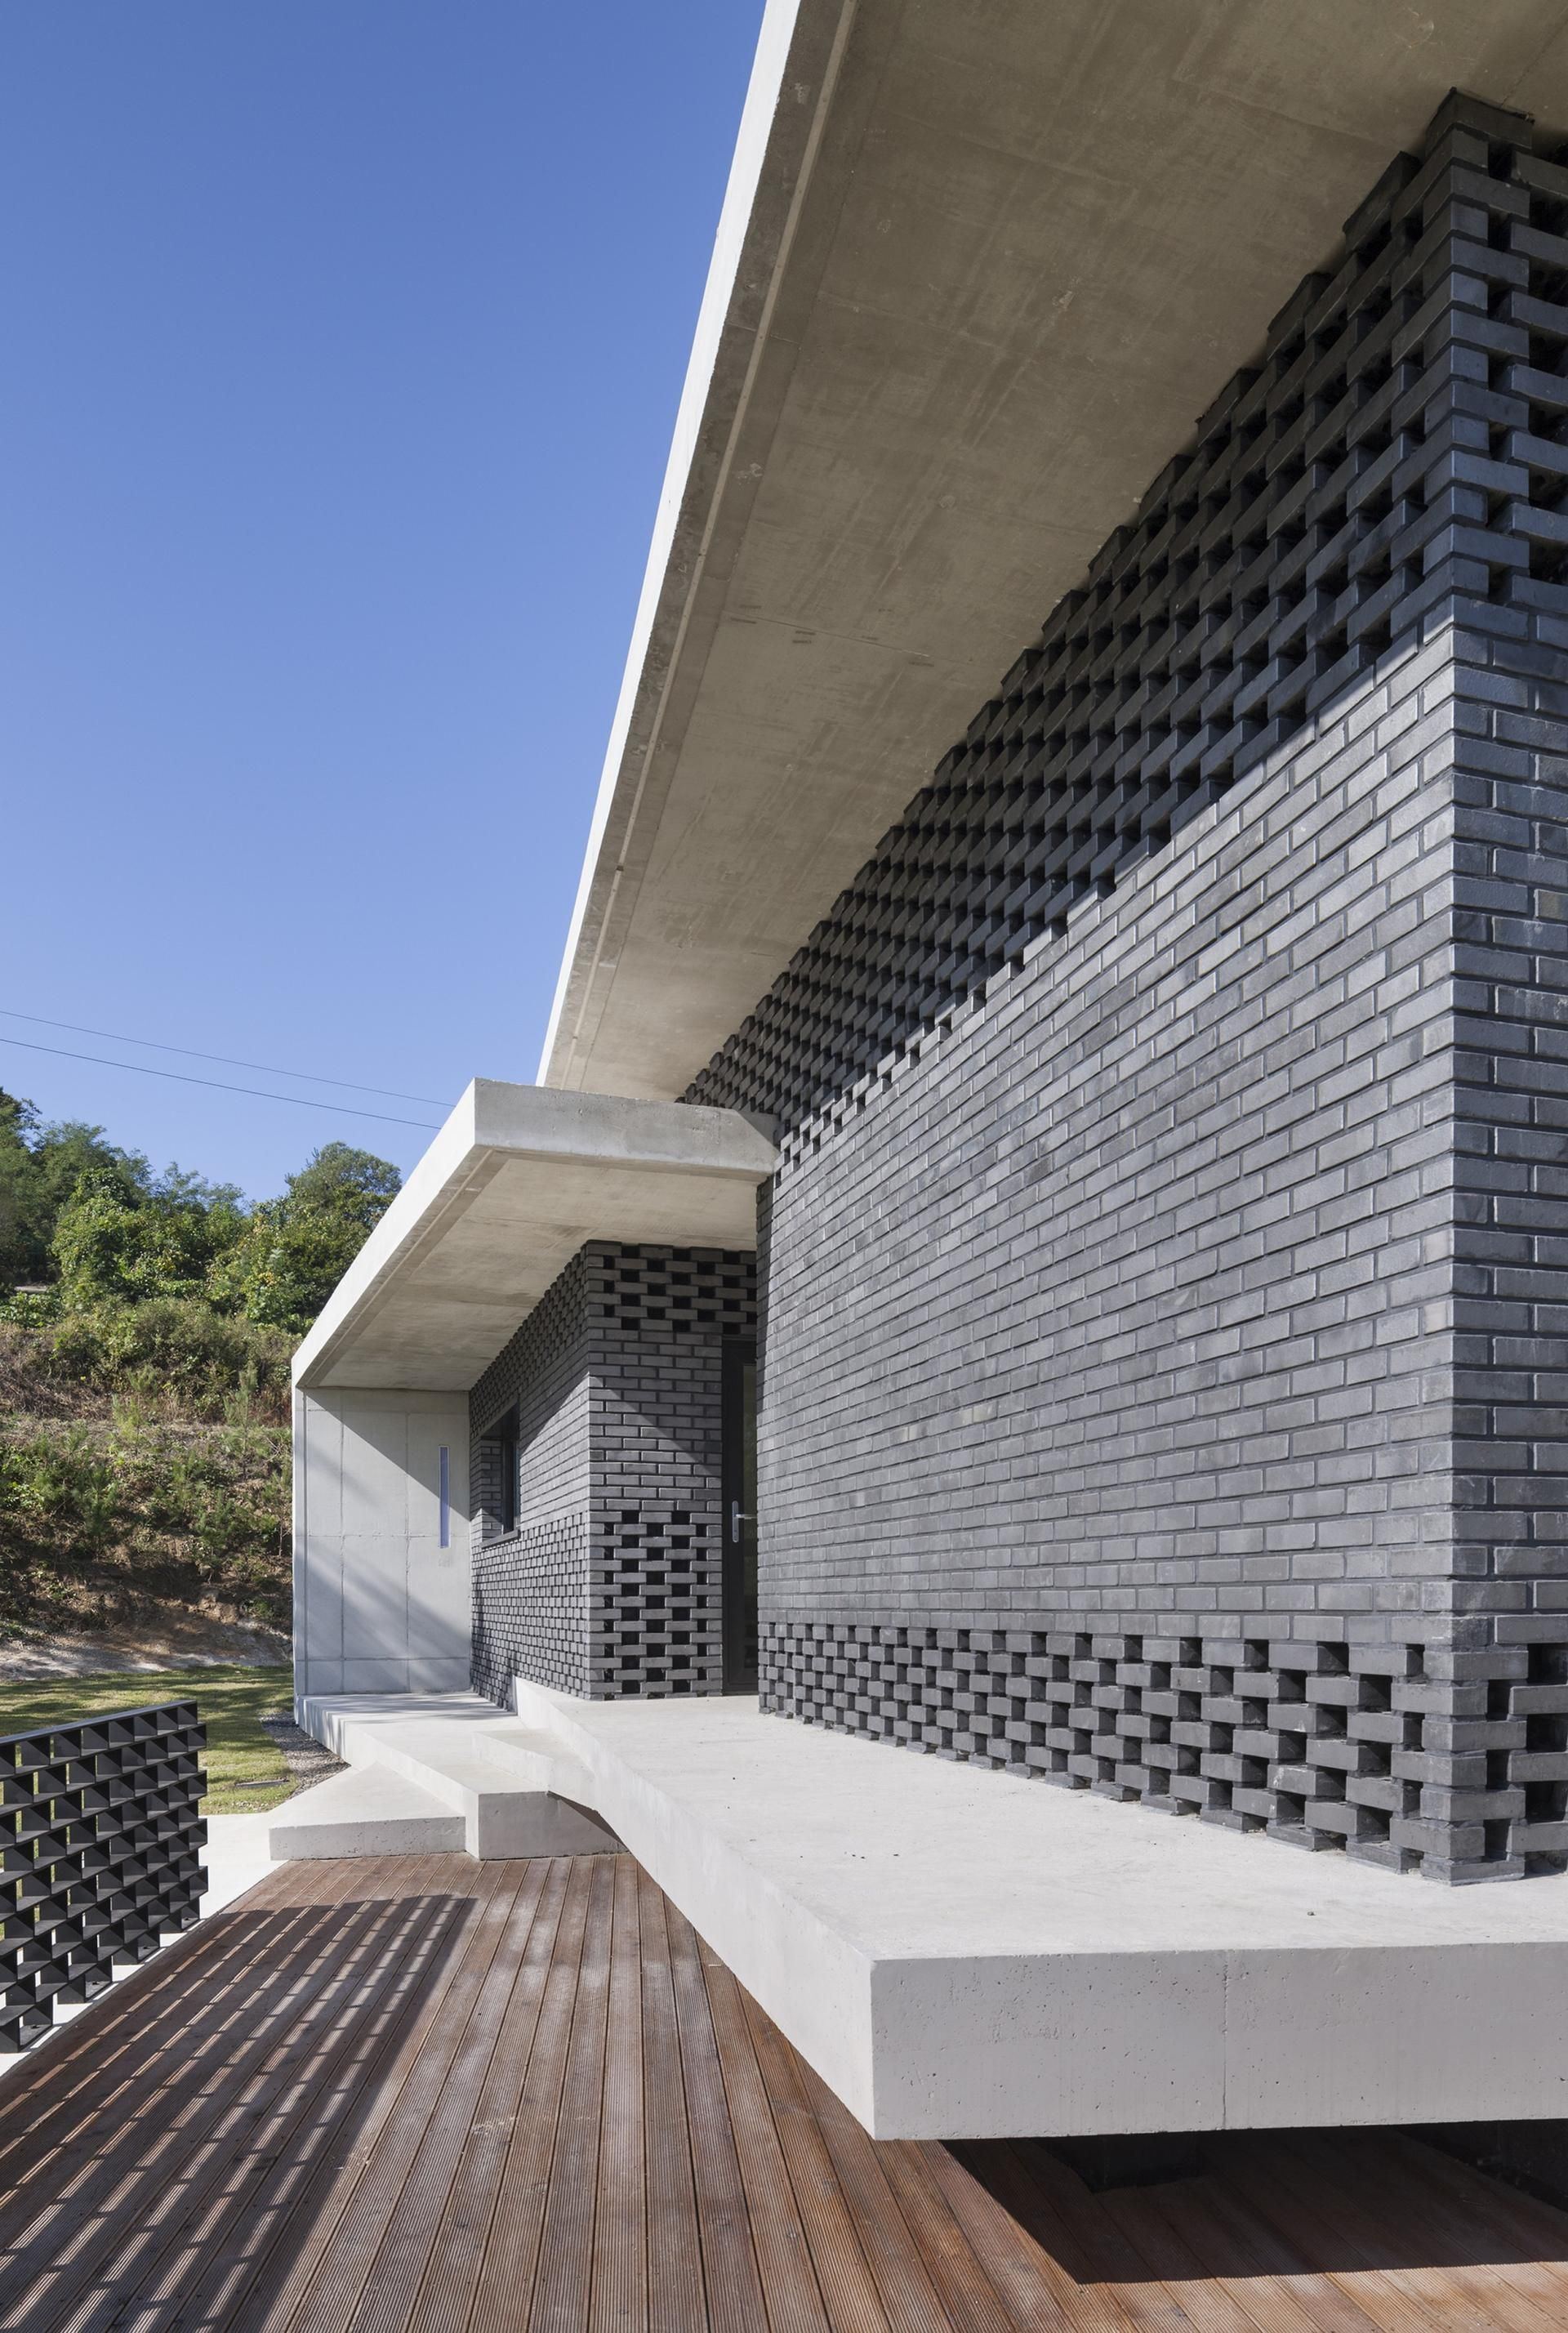 Studio origin project gutters and downspouts house in gyopyeong ri